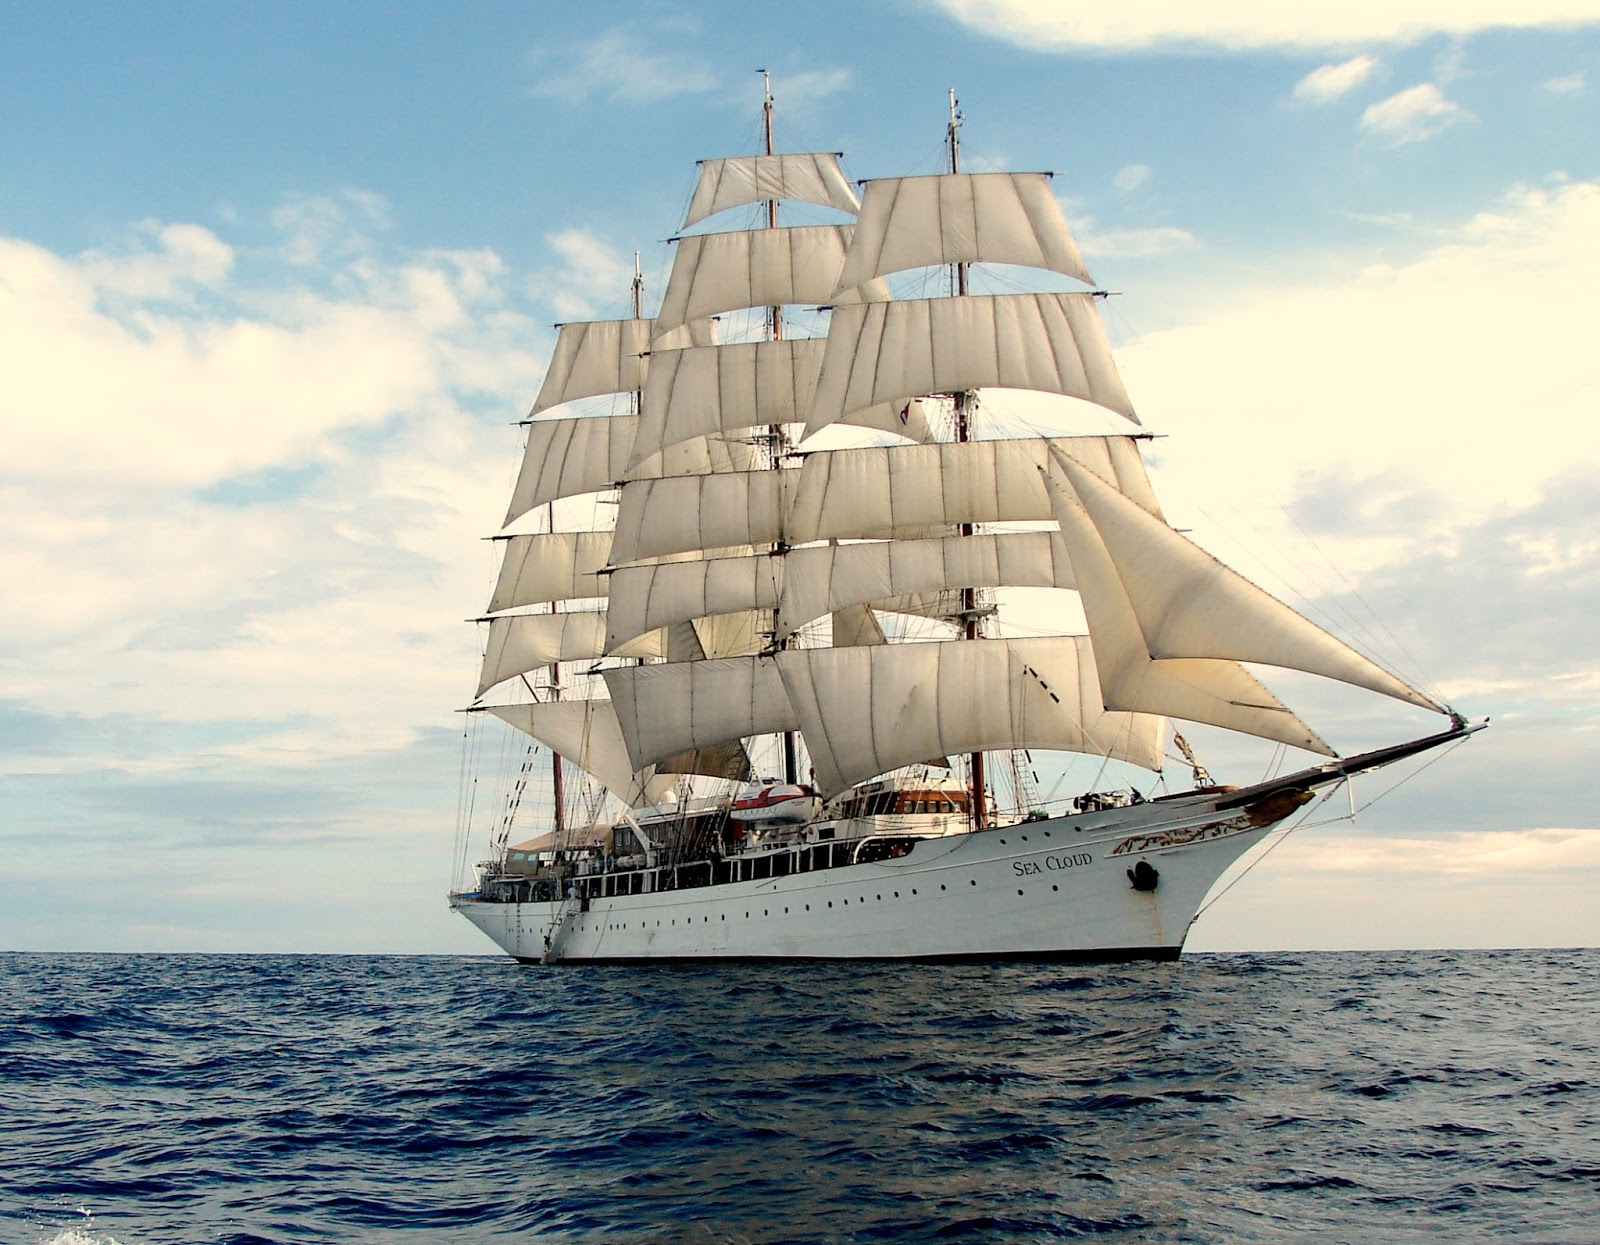 Sea Cloud Sail Yacht Photos Marine Vessel Traffic